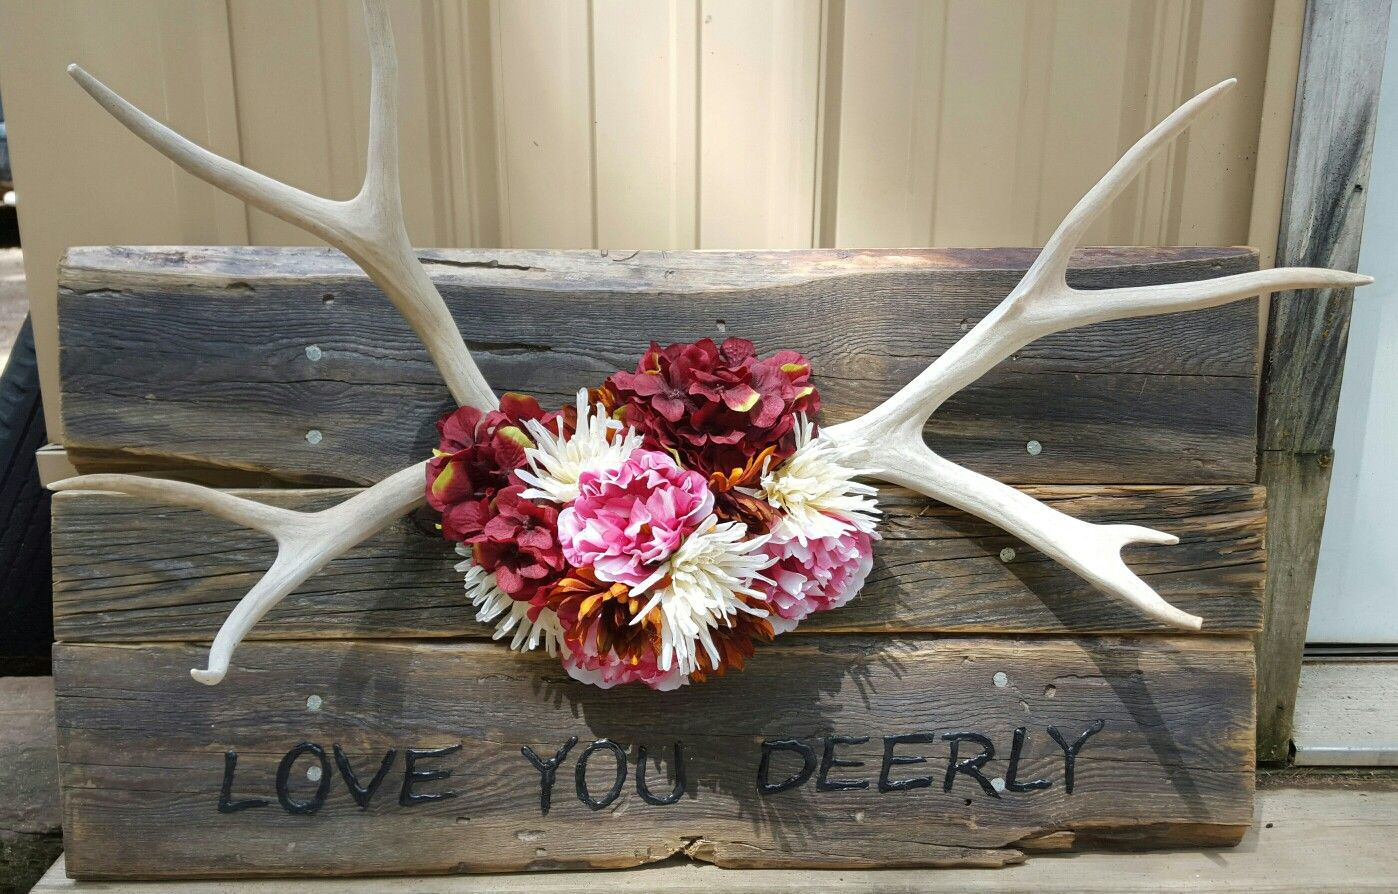 Love You Deerly pallet wood sign with antlers and flowers ...